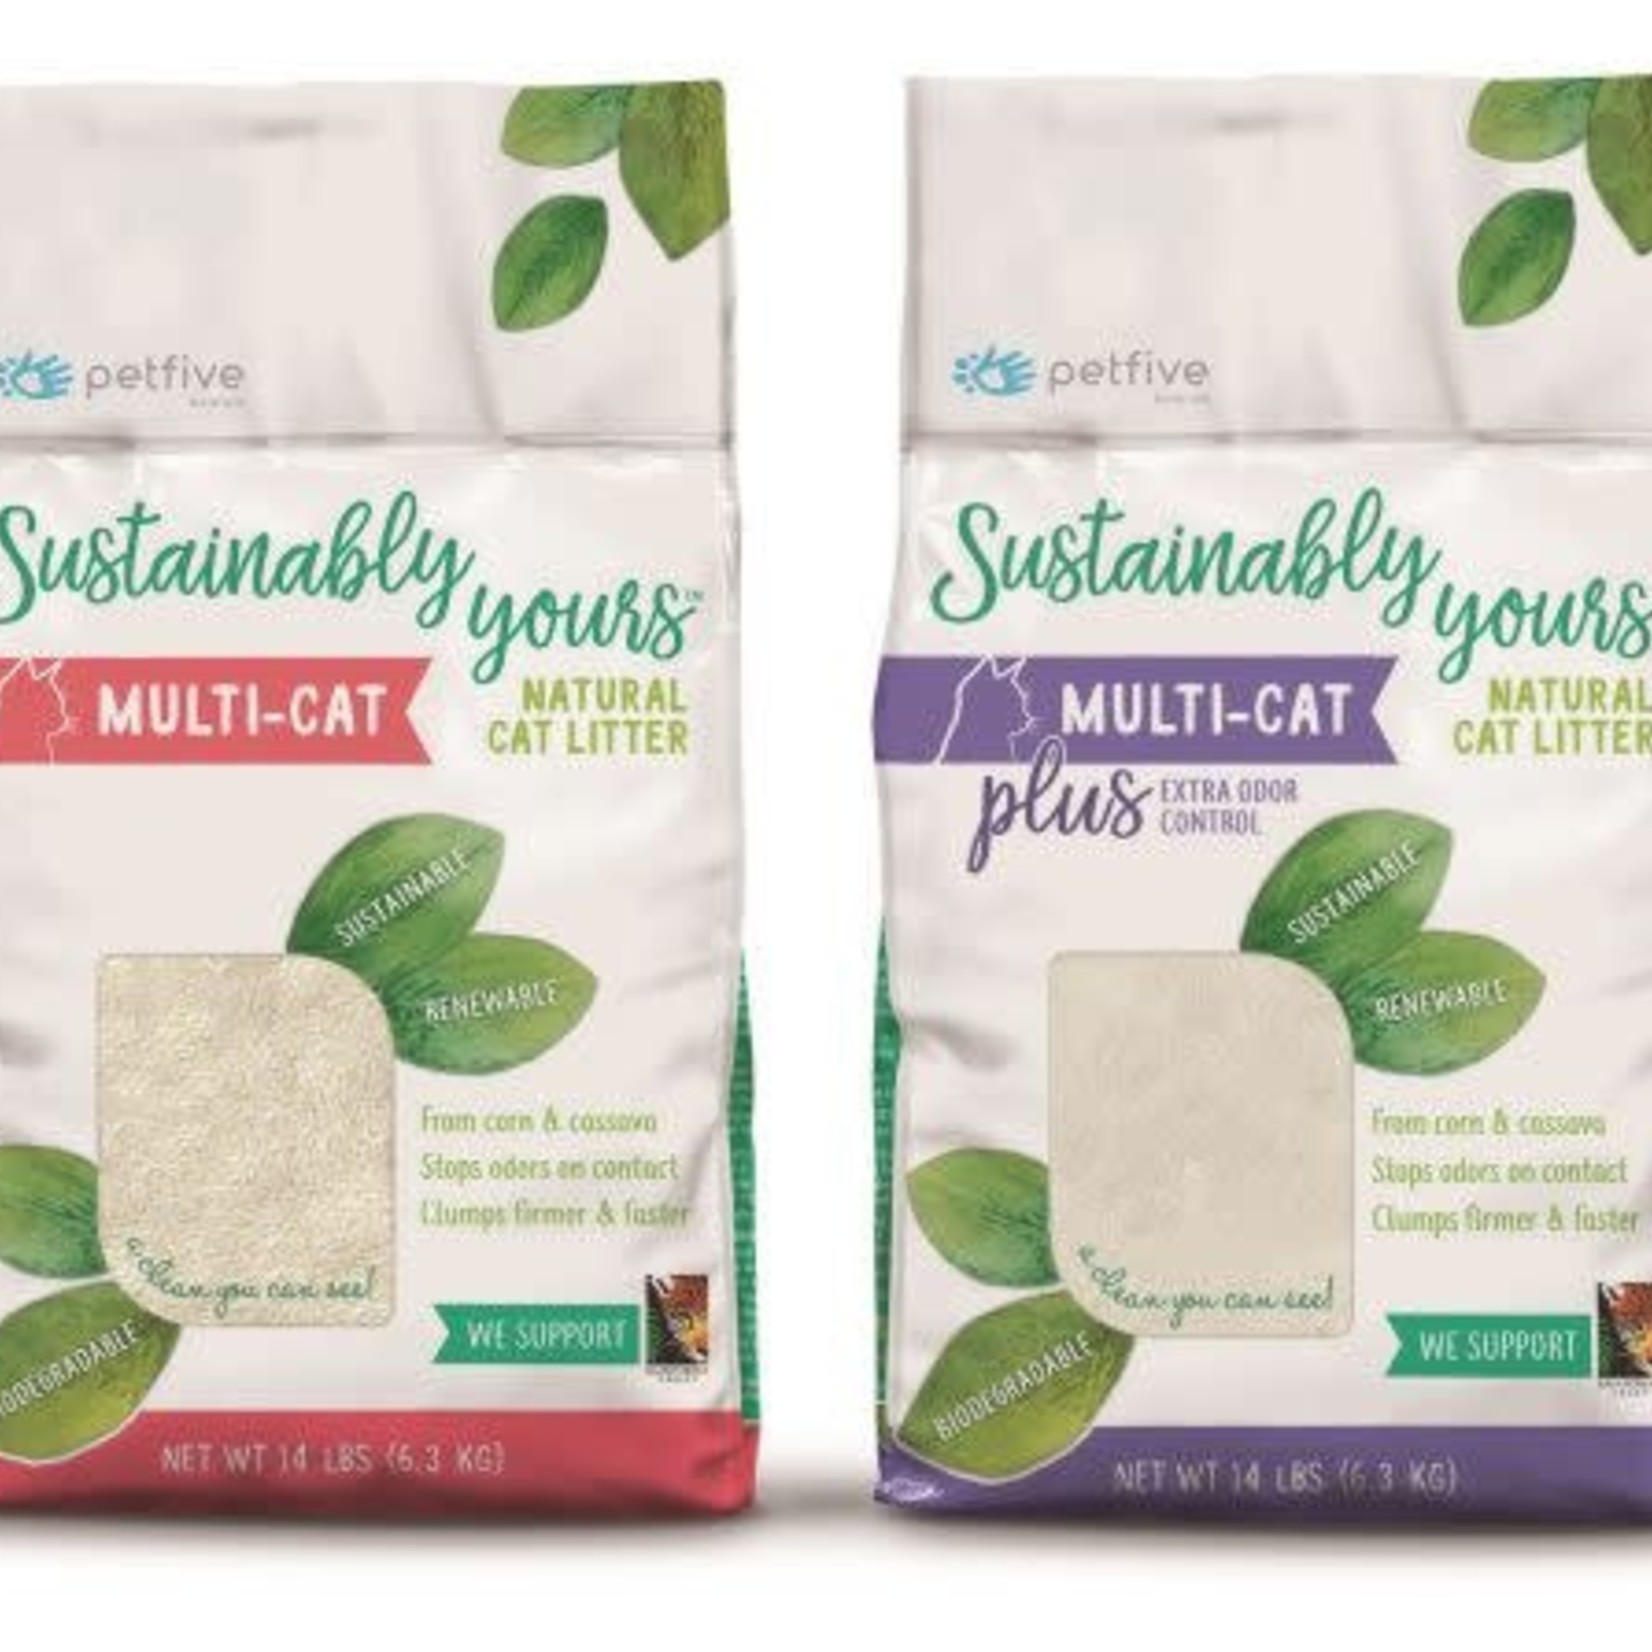 Sustainably Yours Sustainably Yours Litter Multi Cat Regular 13#